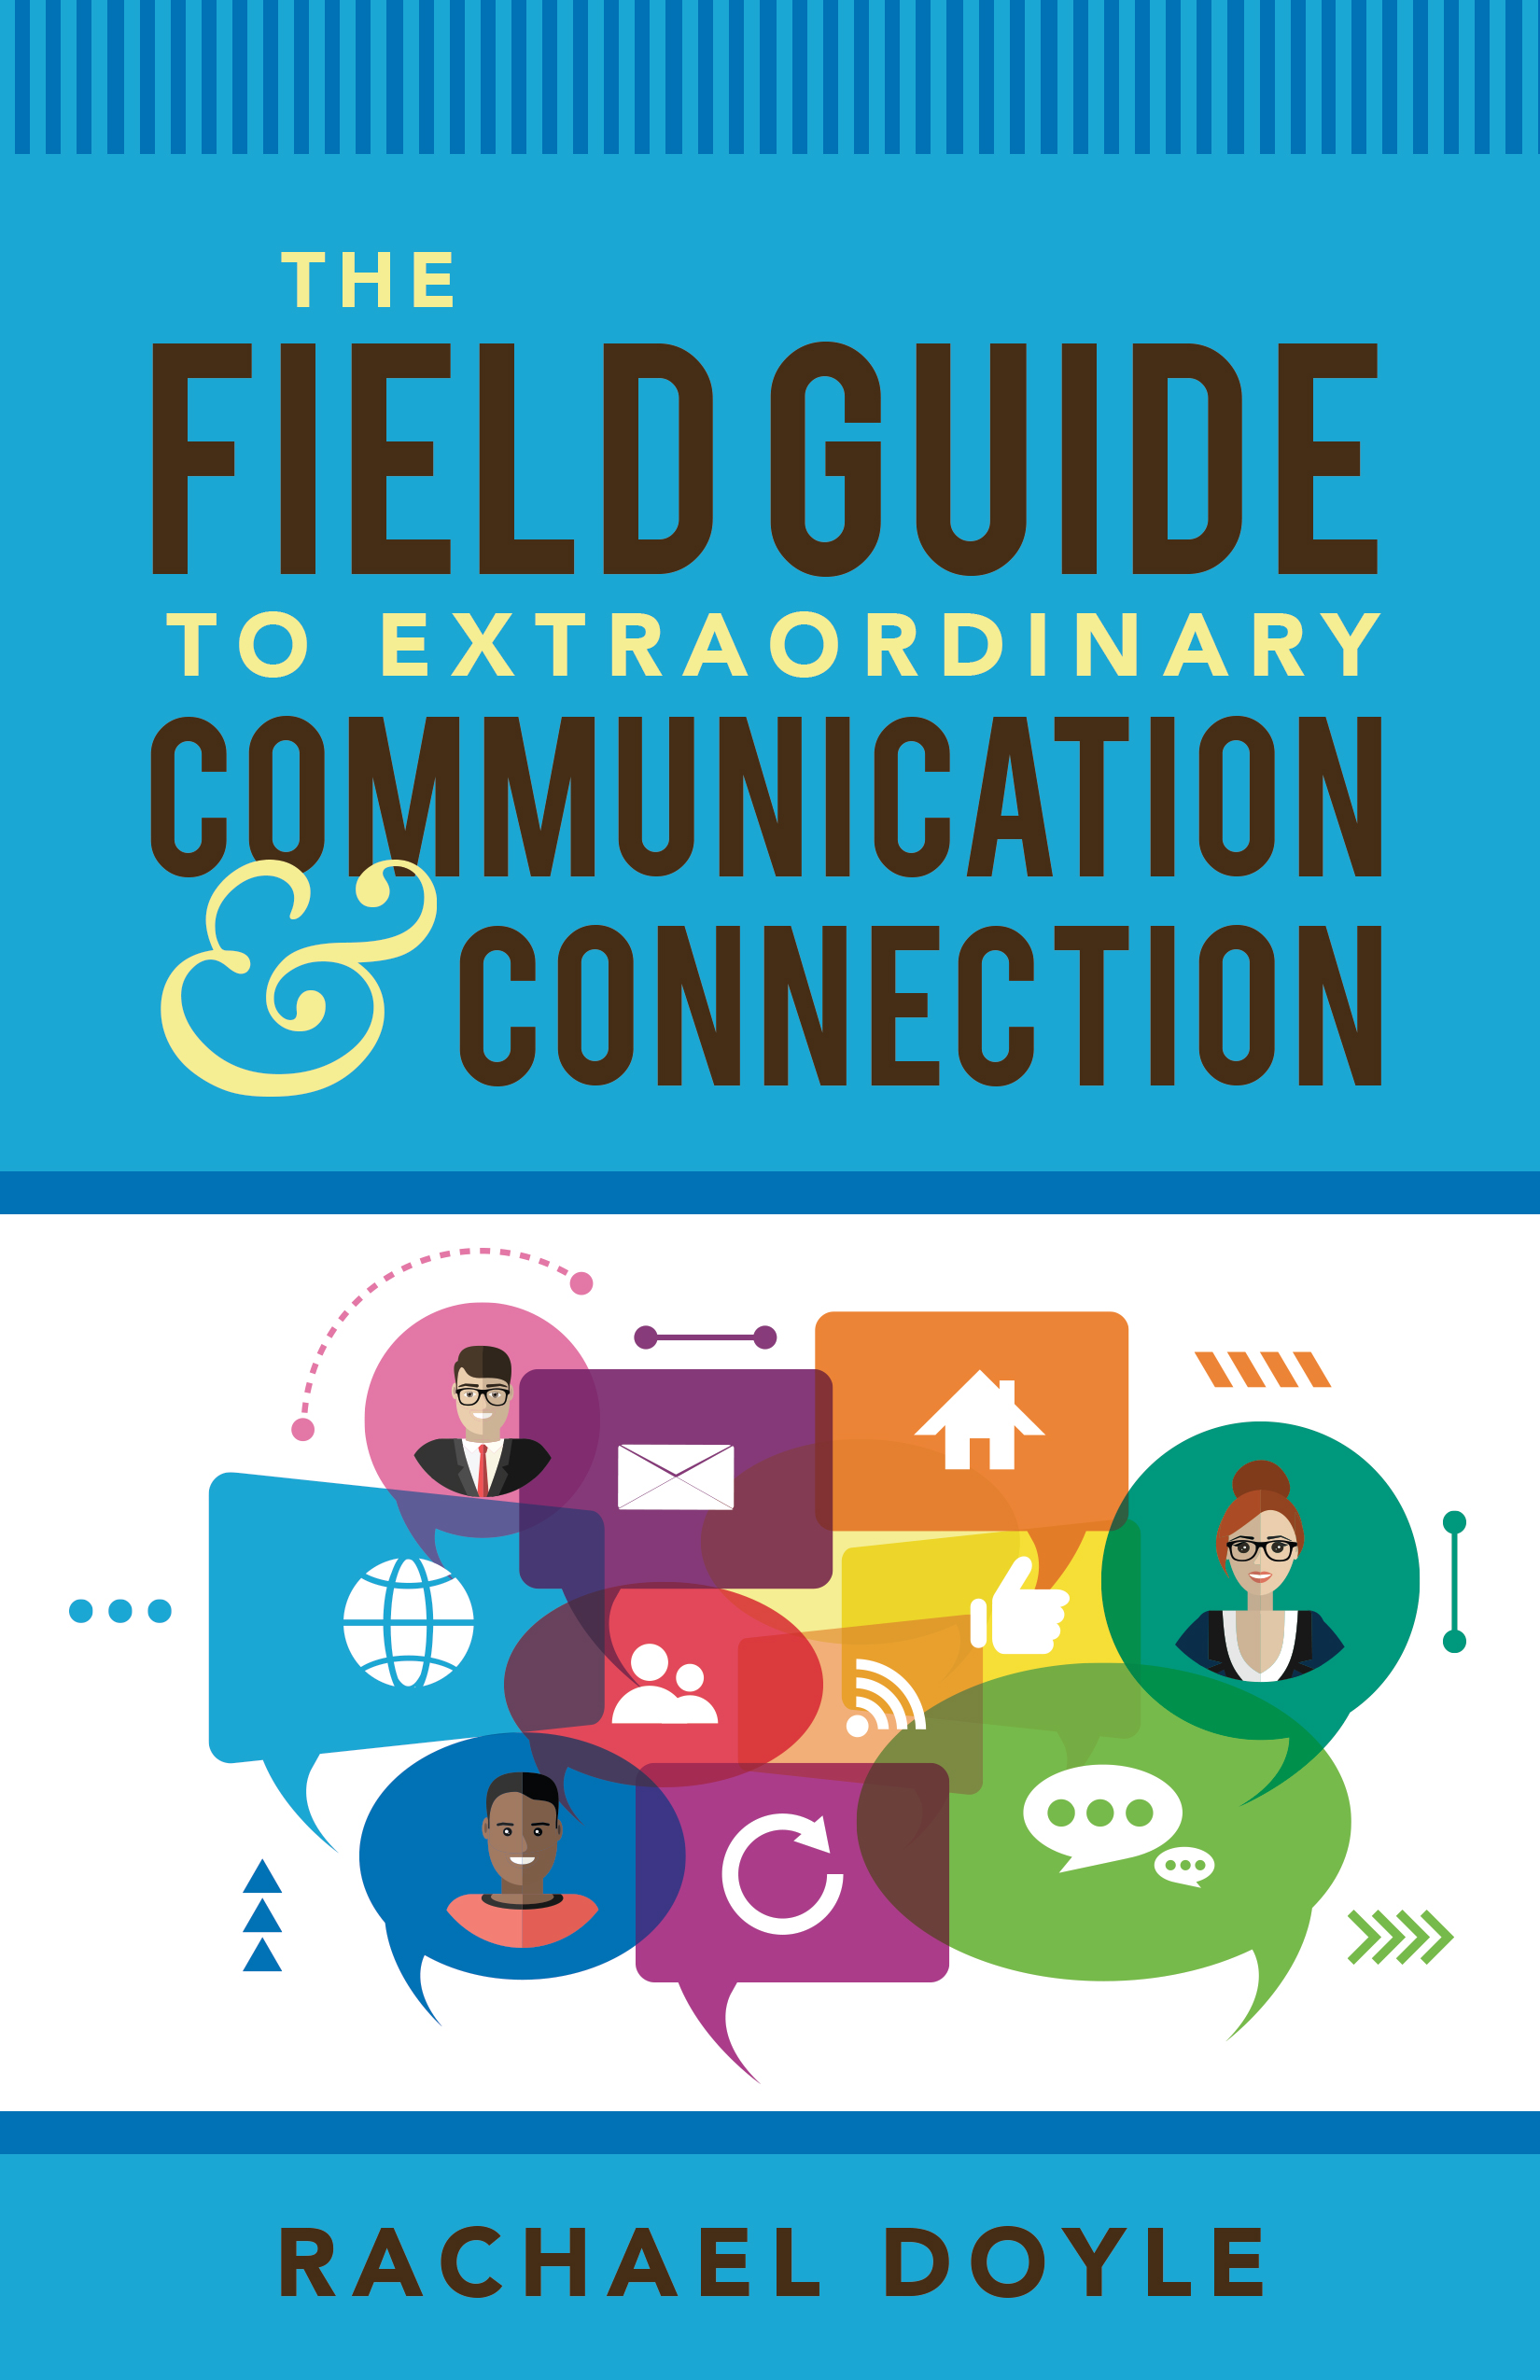 The Field Guide to Extraordinary Communication and Connection - By Rachael Doyle